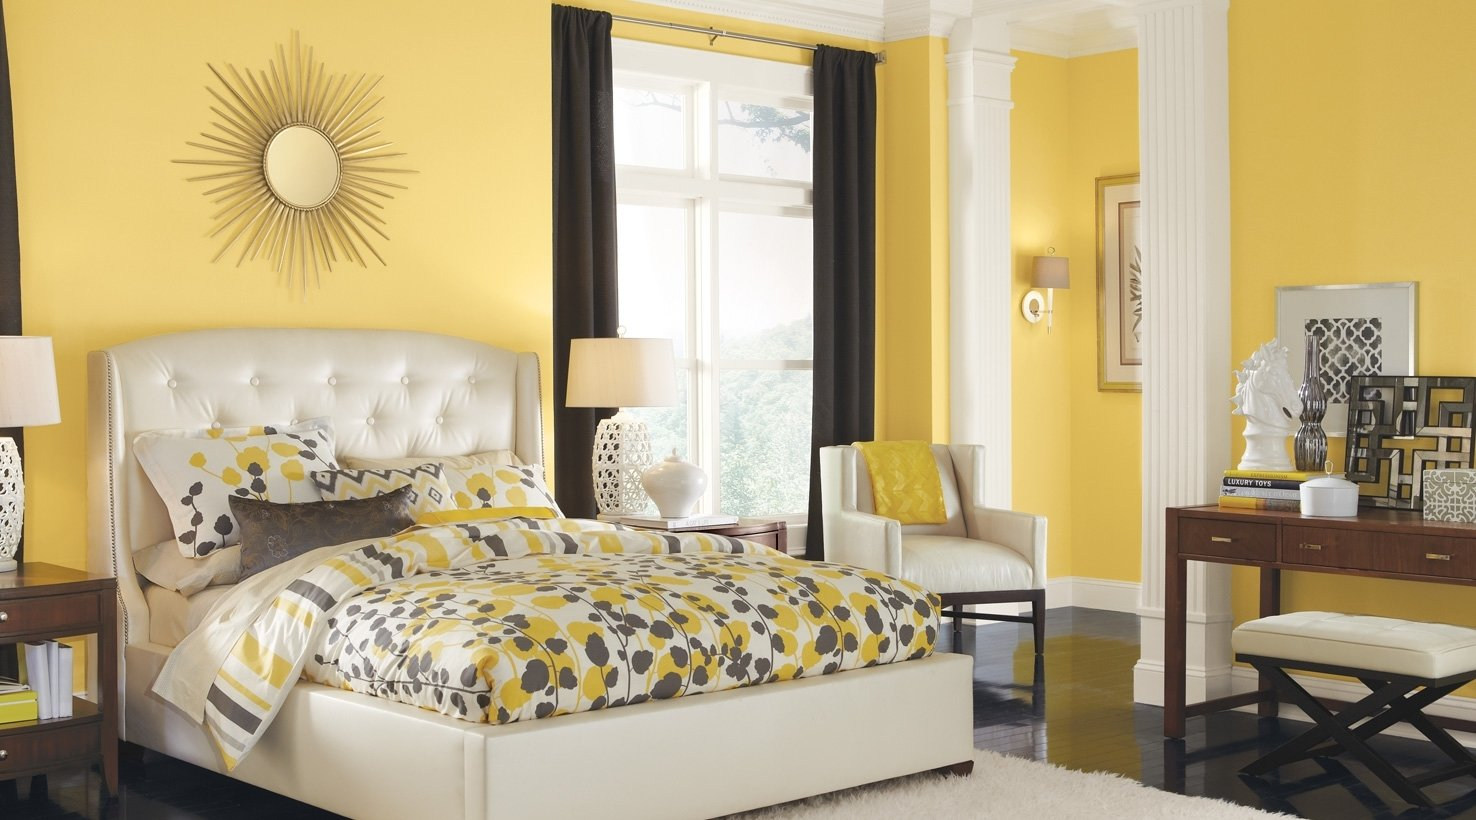 10 Pretty Paint Color Ideas For Bedrooms bedroom paint color ideas inspiration gallery sherwin williams 2021